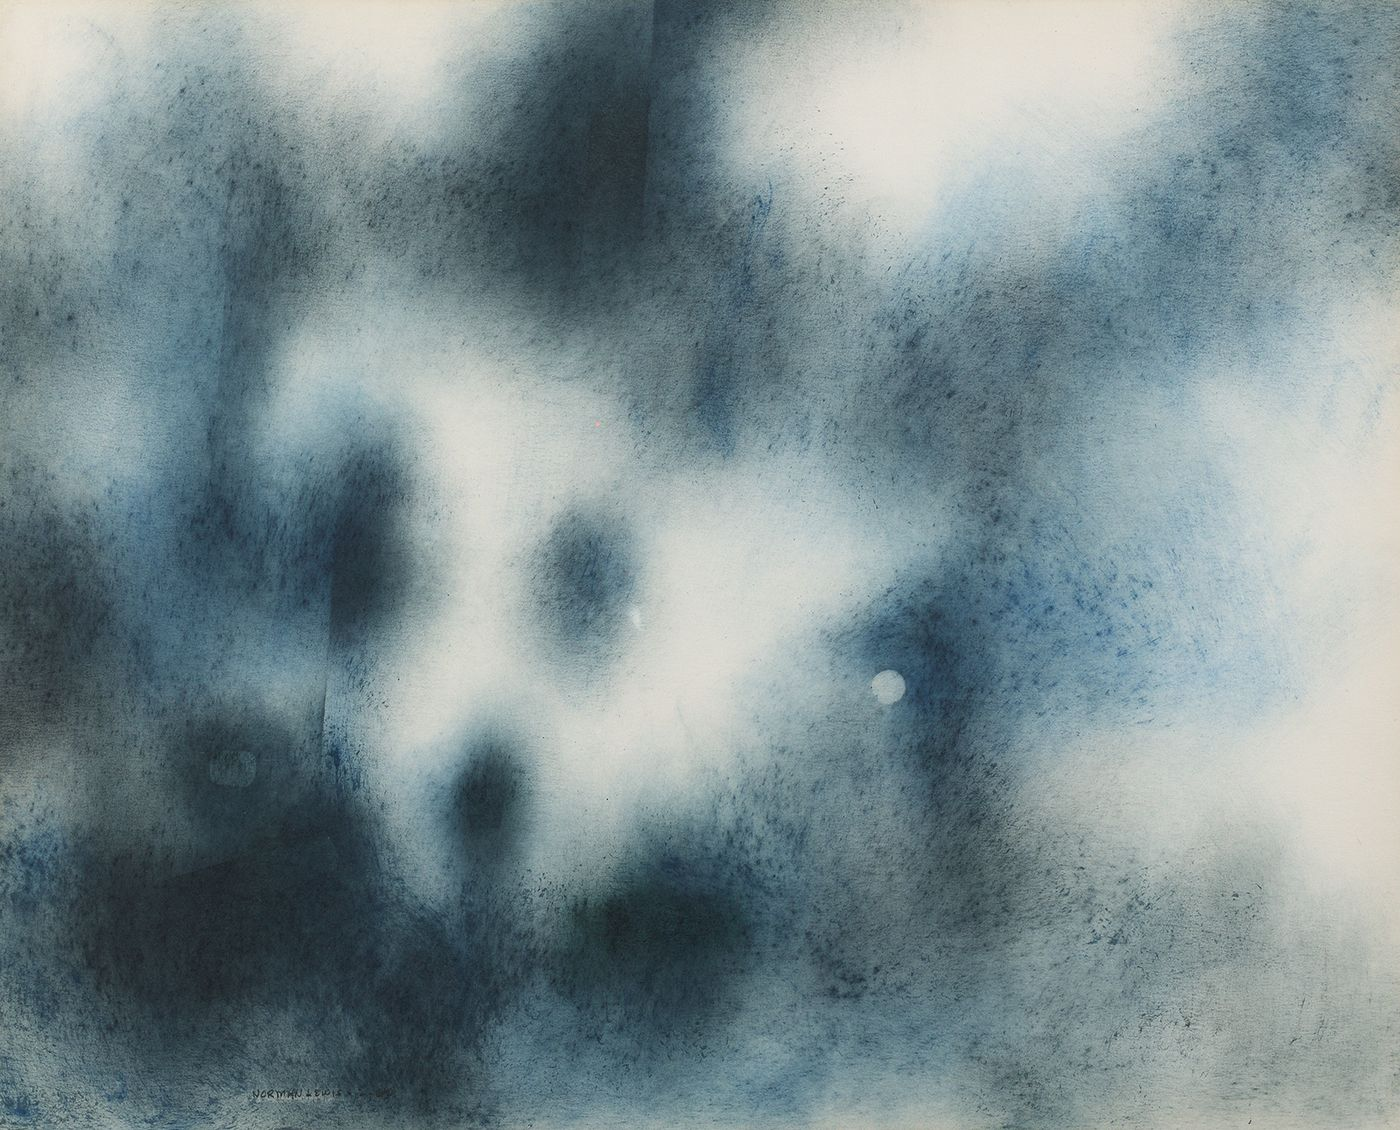 Norman Lewis (1909-1979), Composition in Blue Tones, 1960